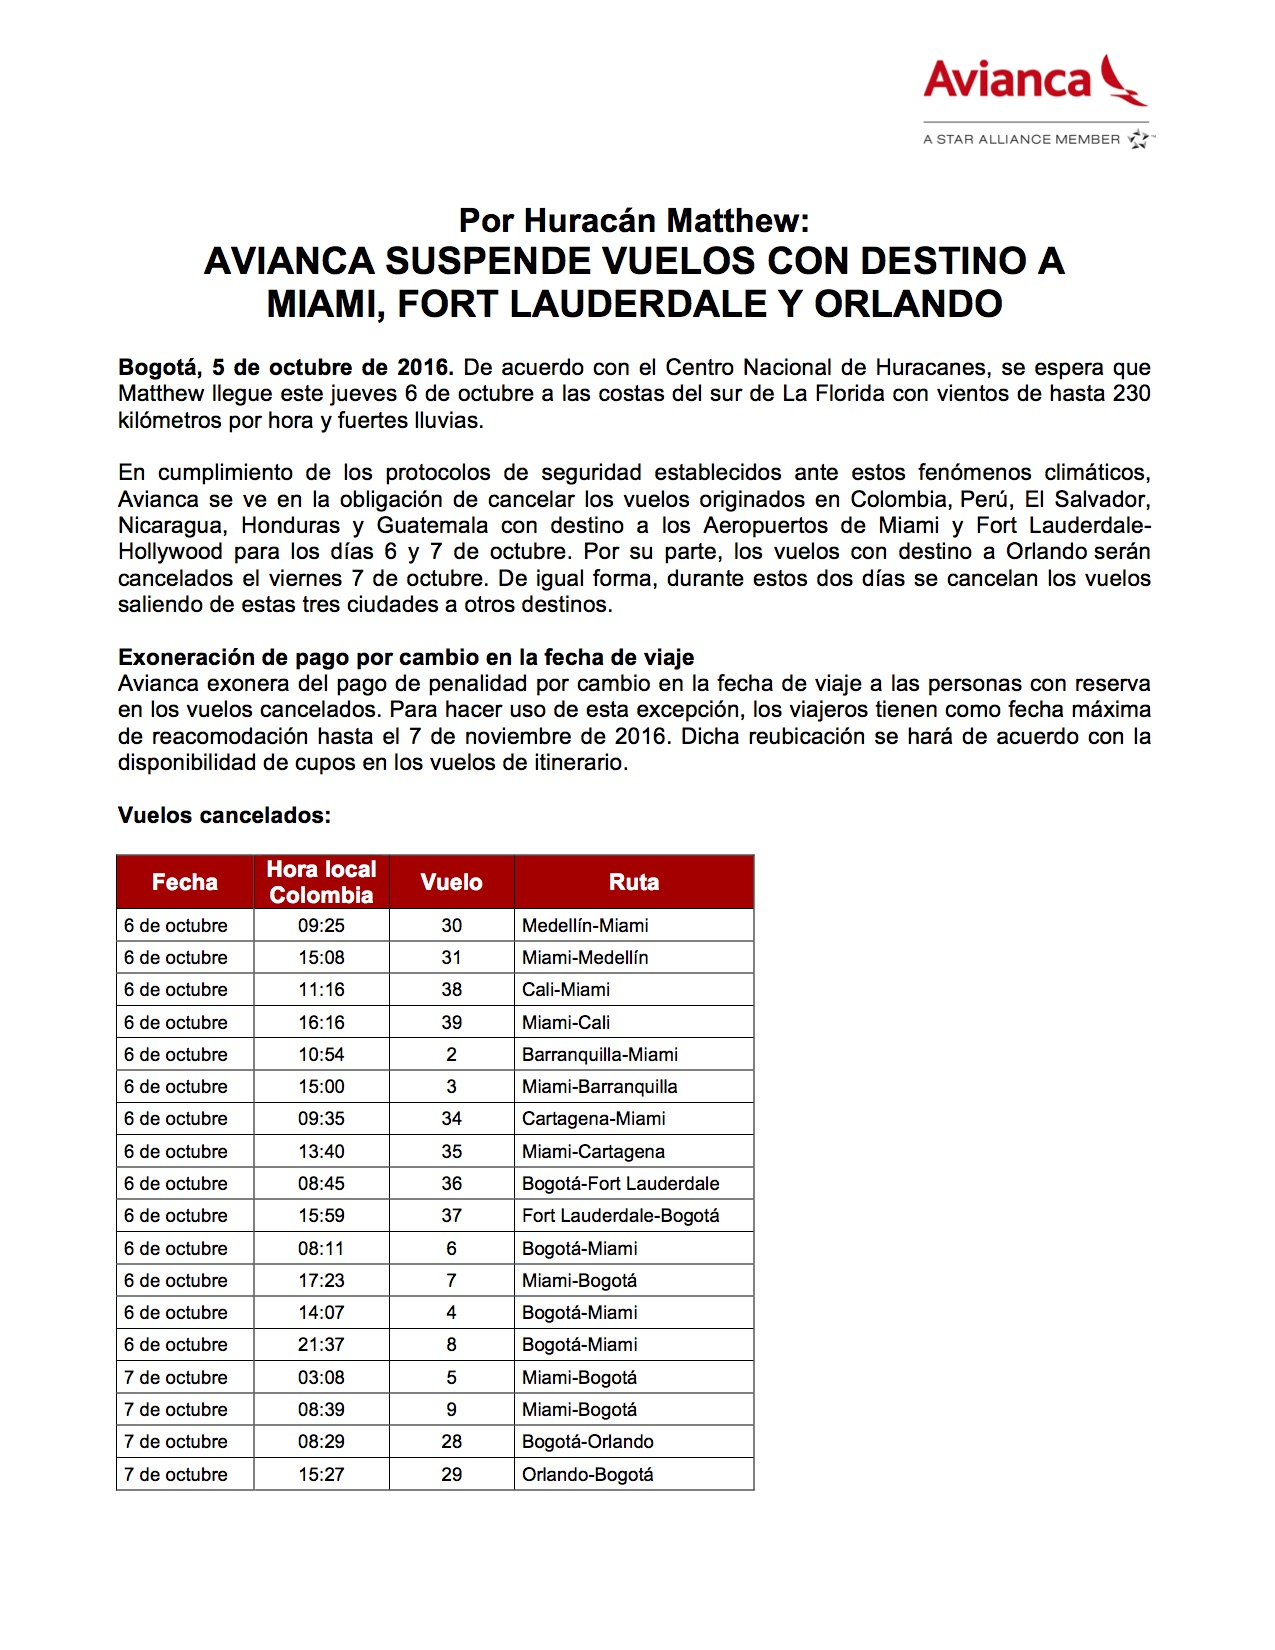 comunicado-avianca1